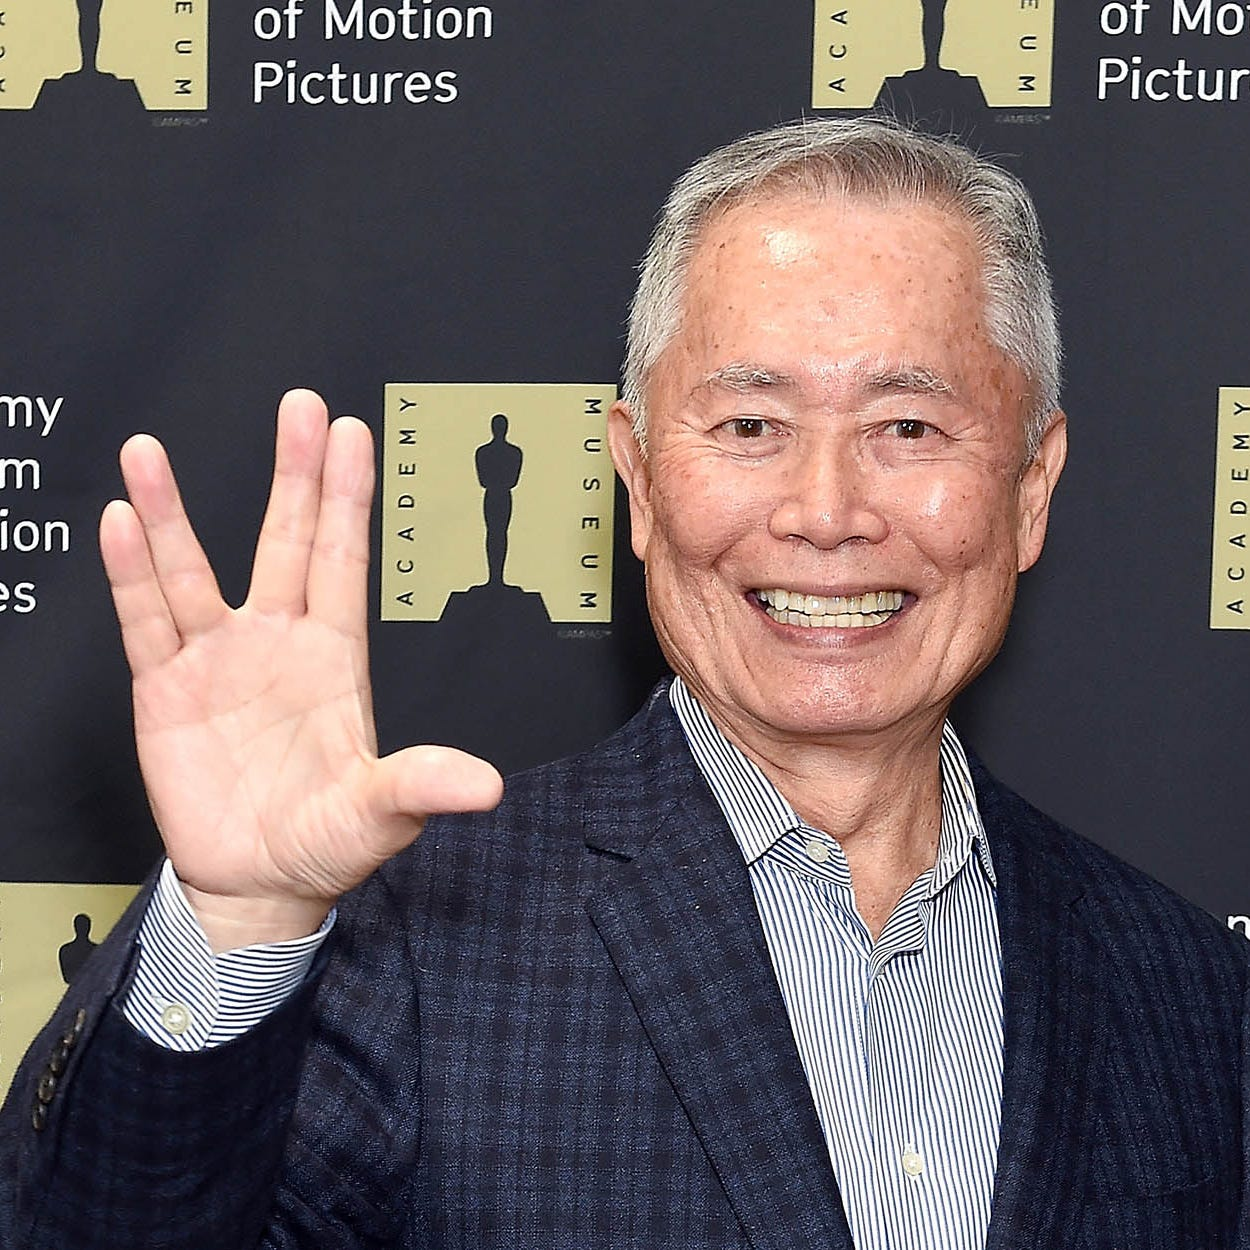 Star Trek's George Takei to appear at Motor City Comic Con